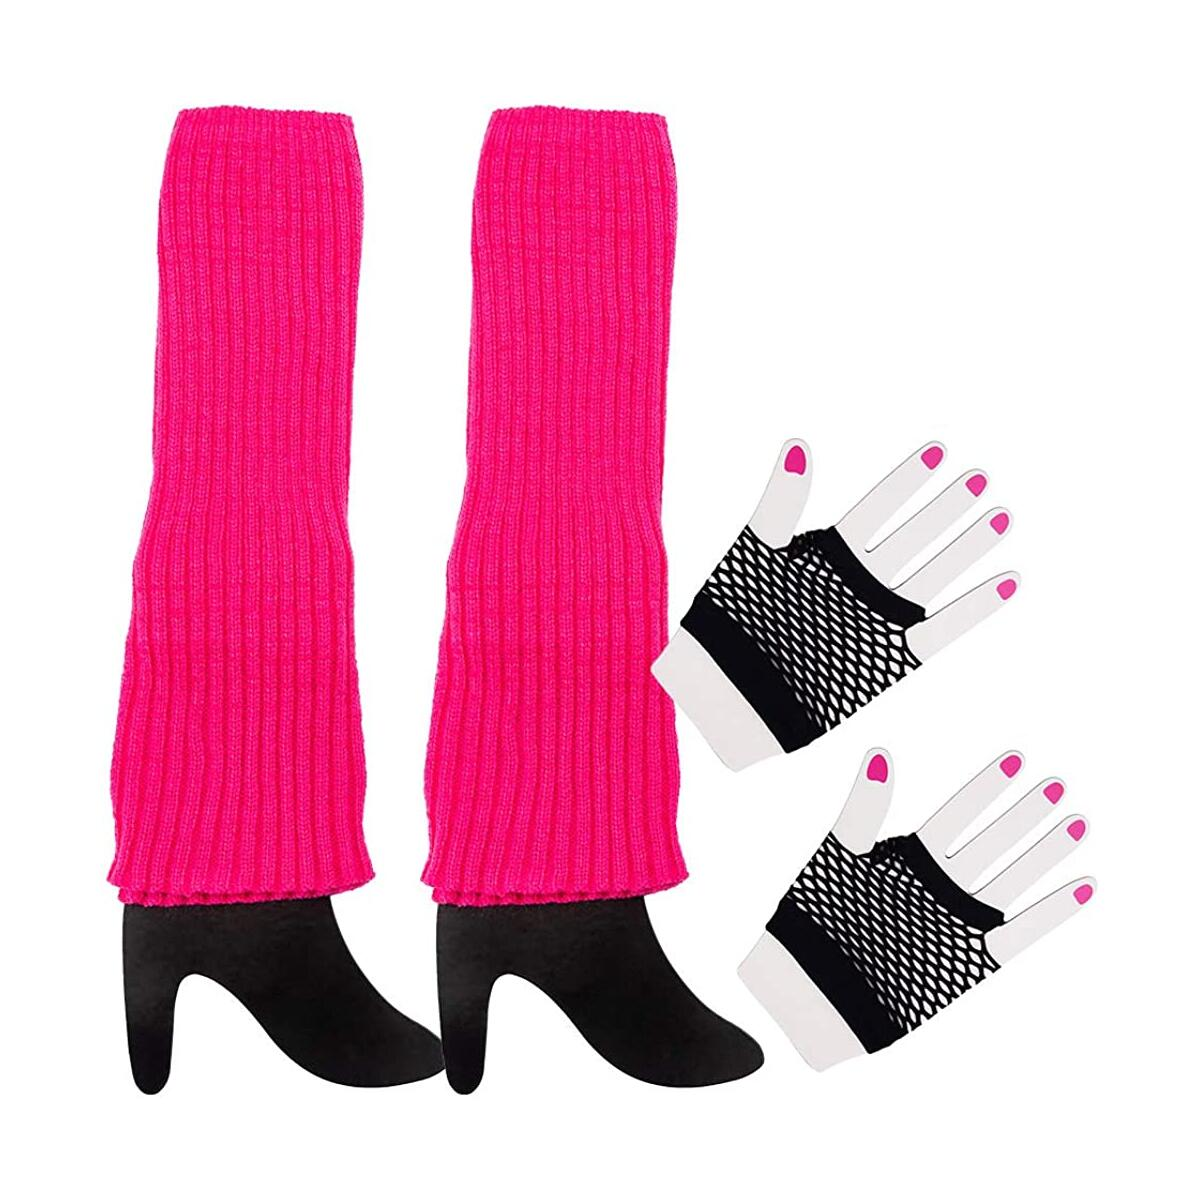 80s Leg Warmers and Black Fishnet Gloves | 1980's Style Costume Accessories for Women